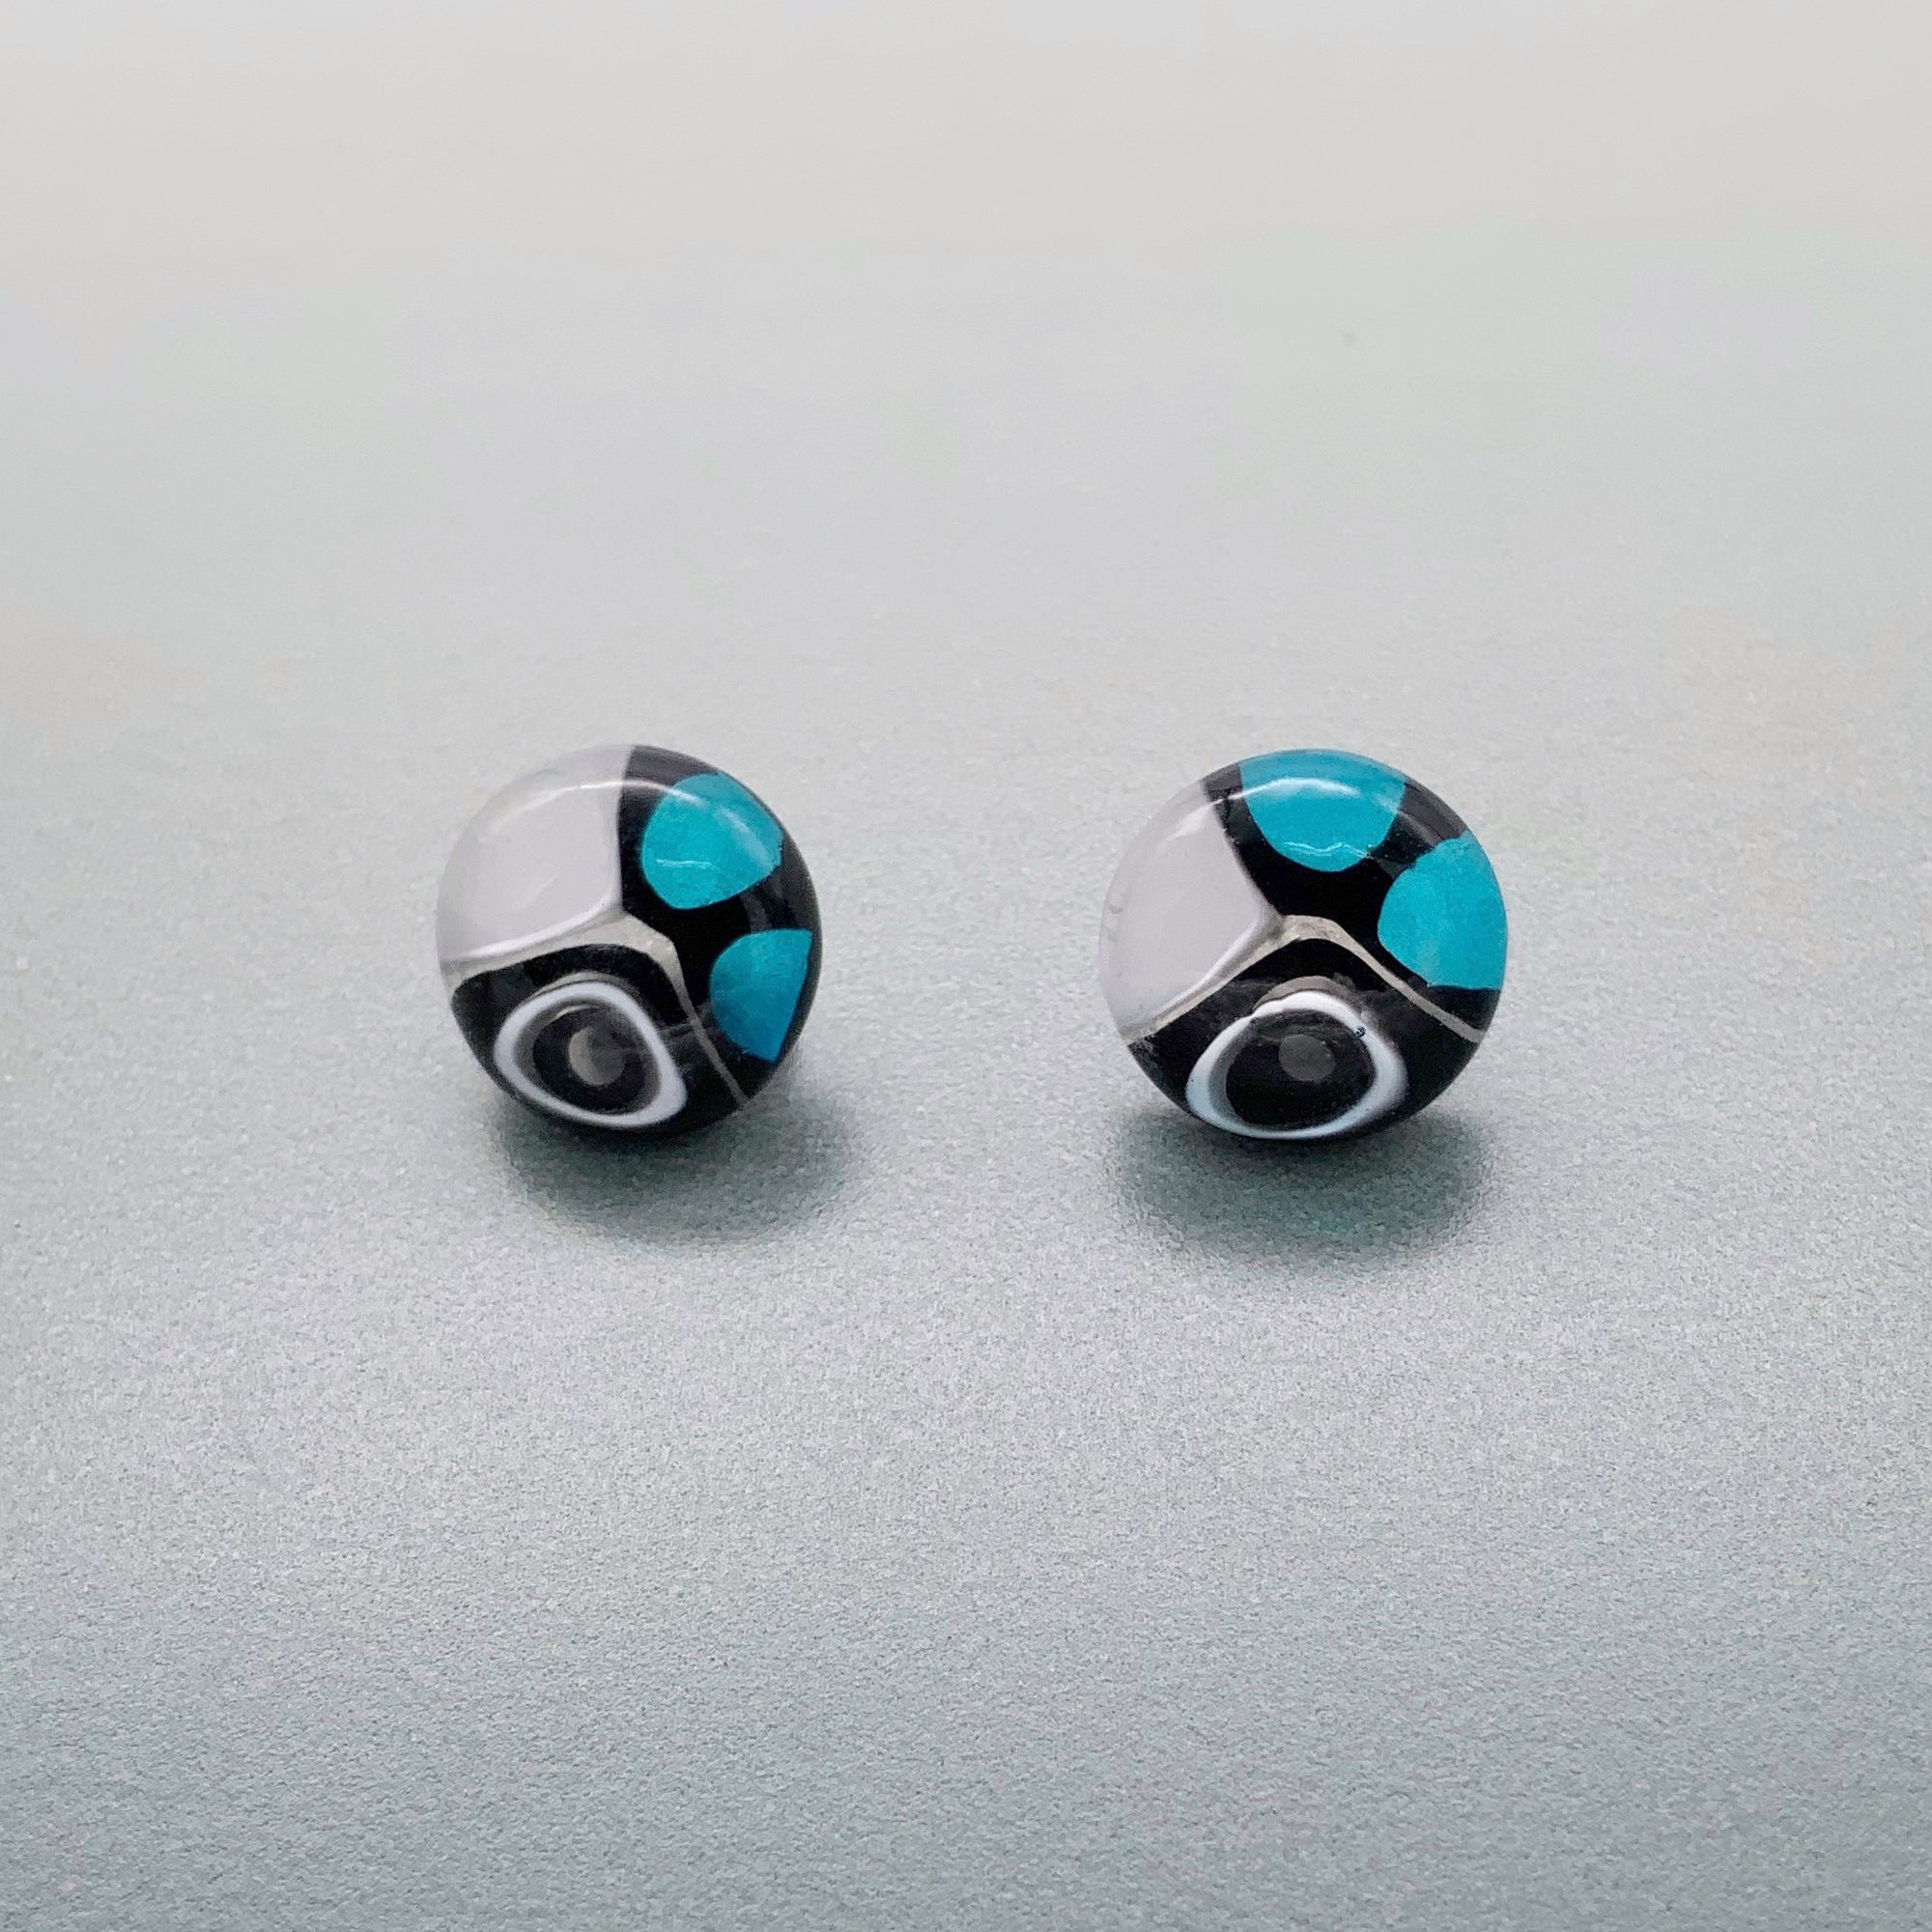 Murrini glass white, turquoise and black stud earrings